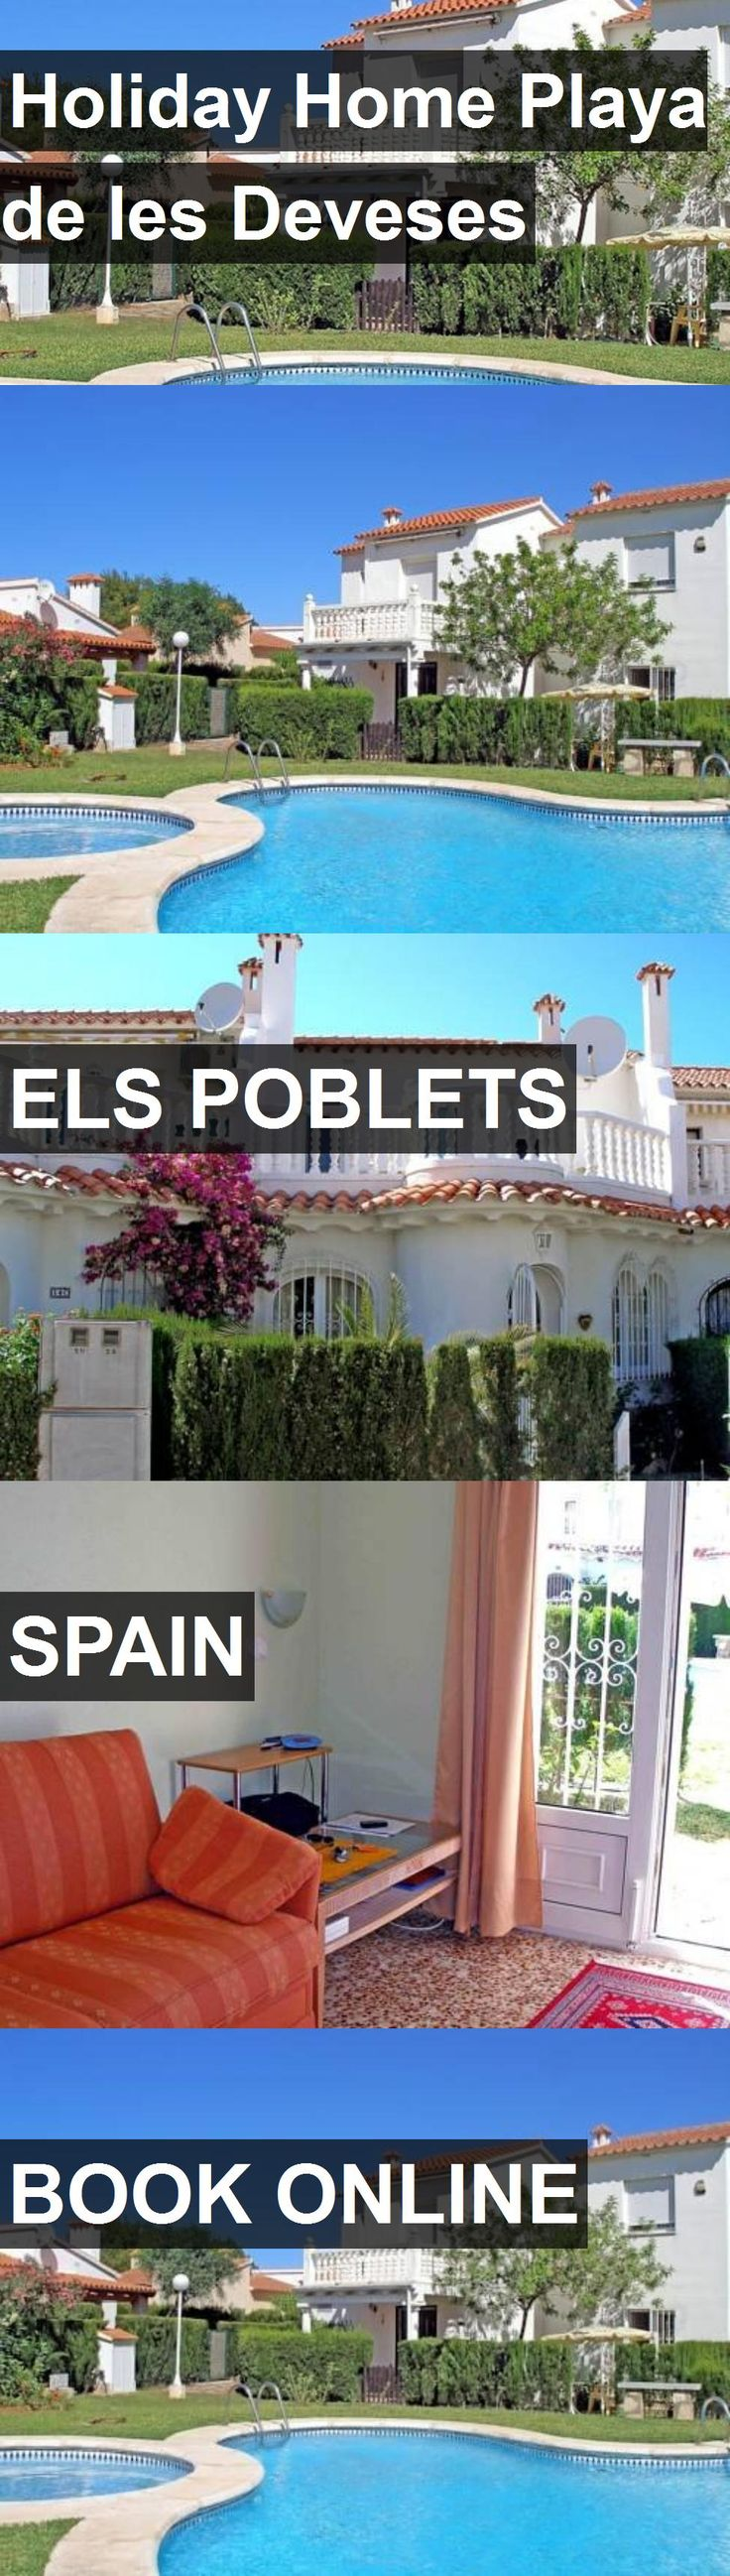 Hotel Holiday Home Playa de les Deveses in Els Poblets, Spain. For more information, photos, reviews and best prices please follow the link. #Spain #ElsPoblets #HolidayHomePlayadelesDeveses #hotel #travel #vacation